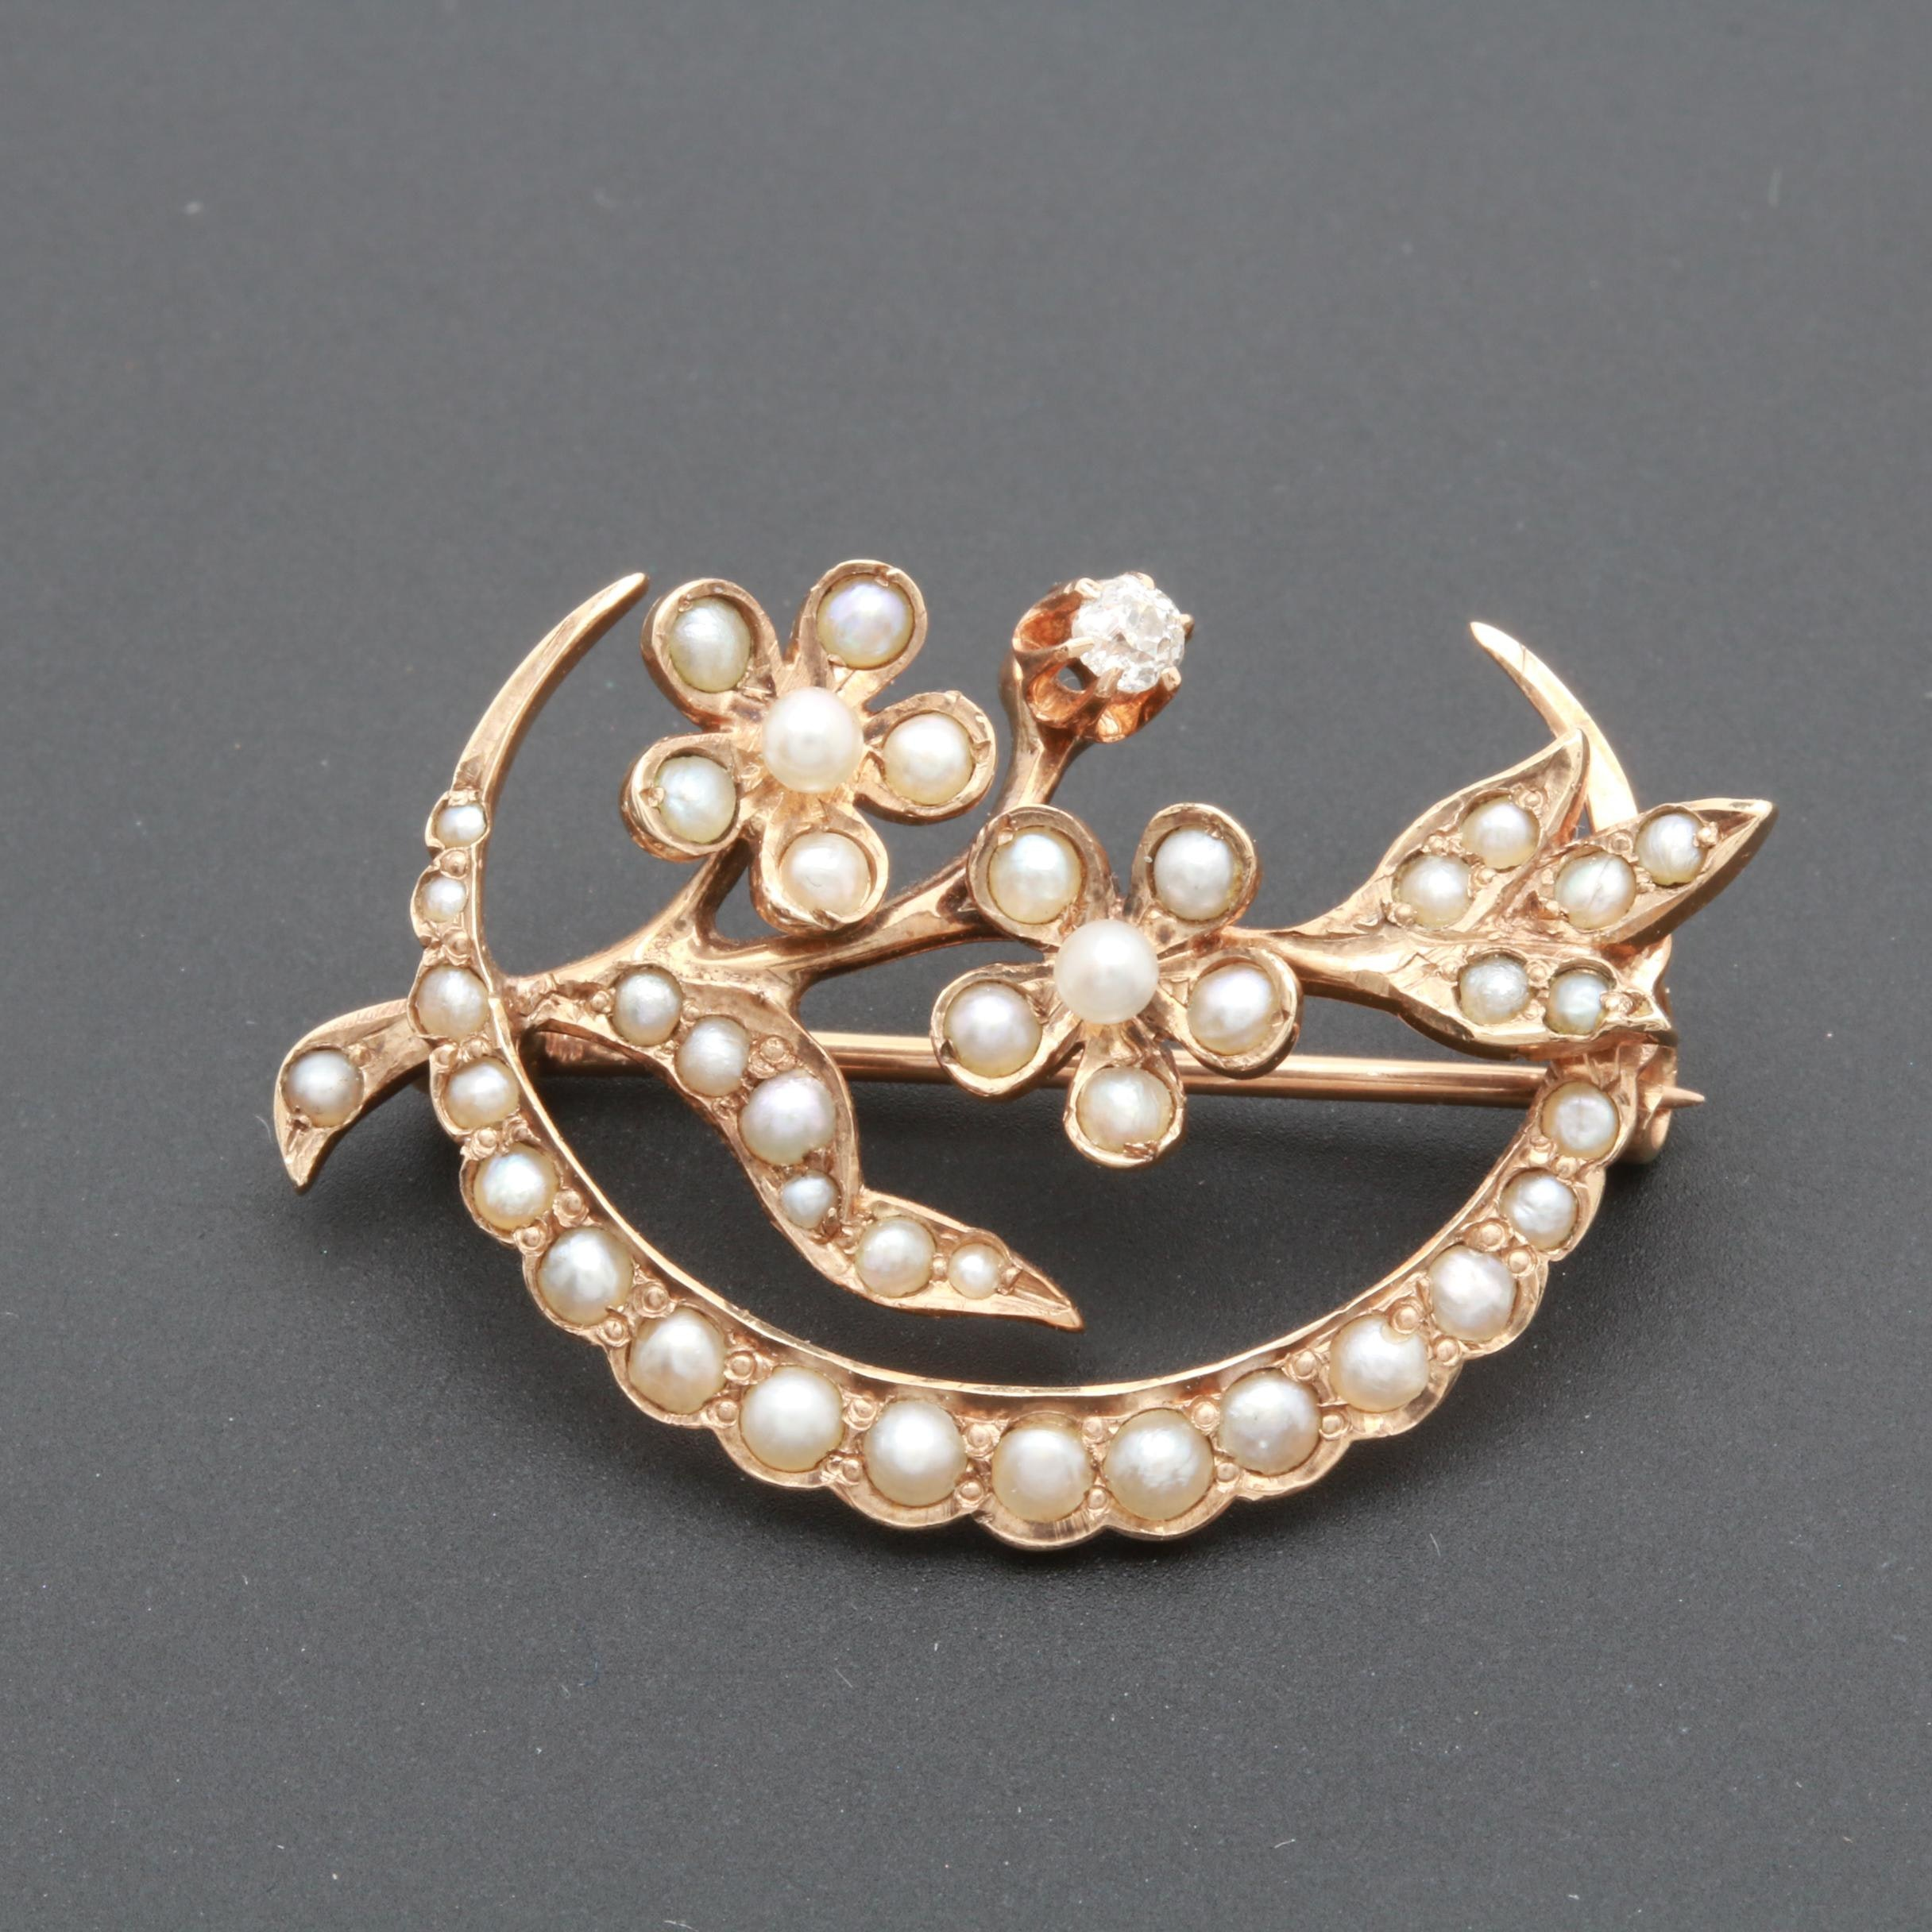 Victorian 10K Yellow Gold Diamond and Seed Pearl Brooch